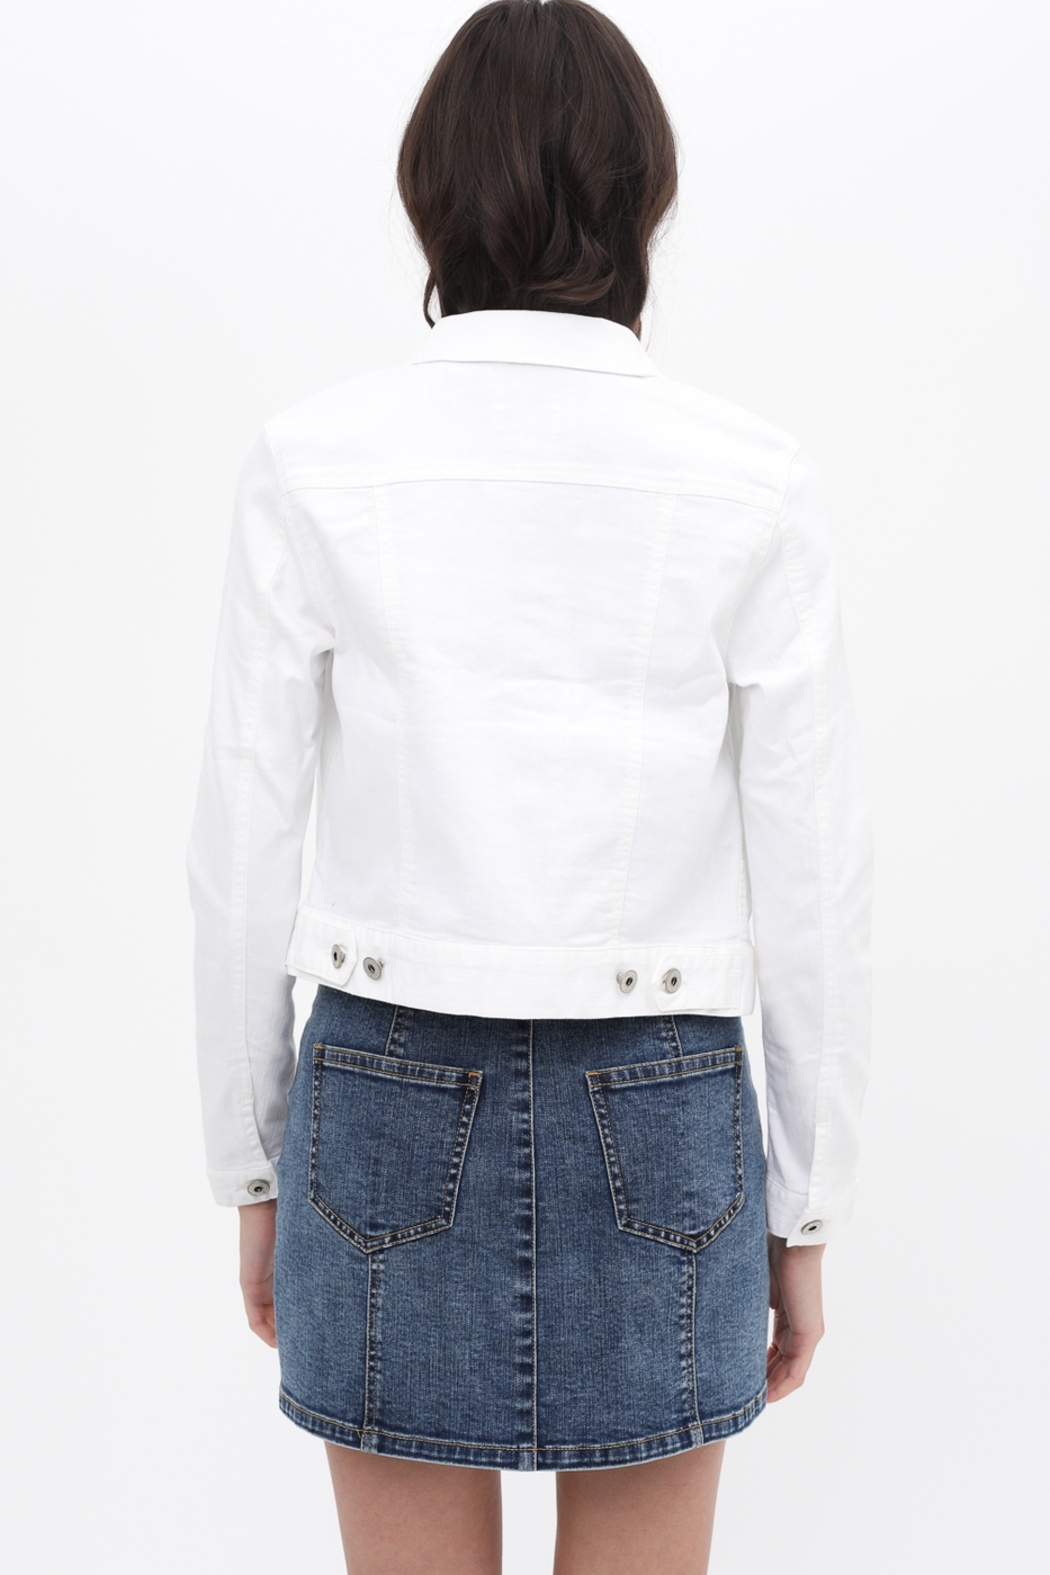 Lyn -Maree's Perfect White Denim Jacket - Side Cropped Image